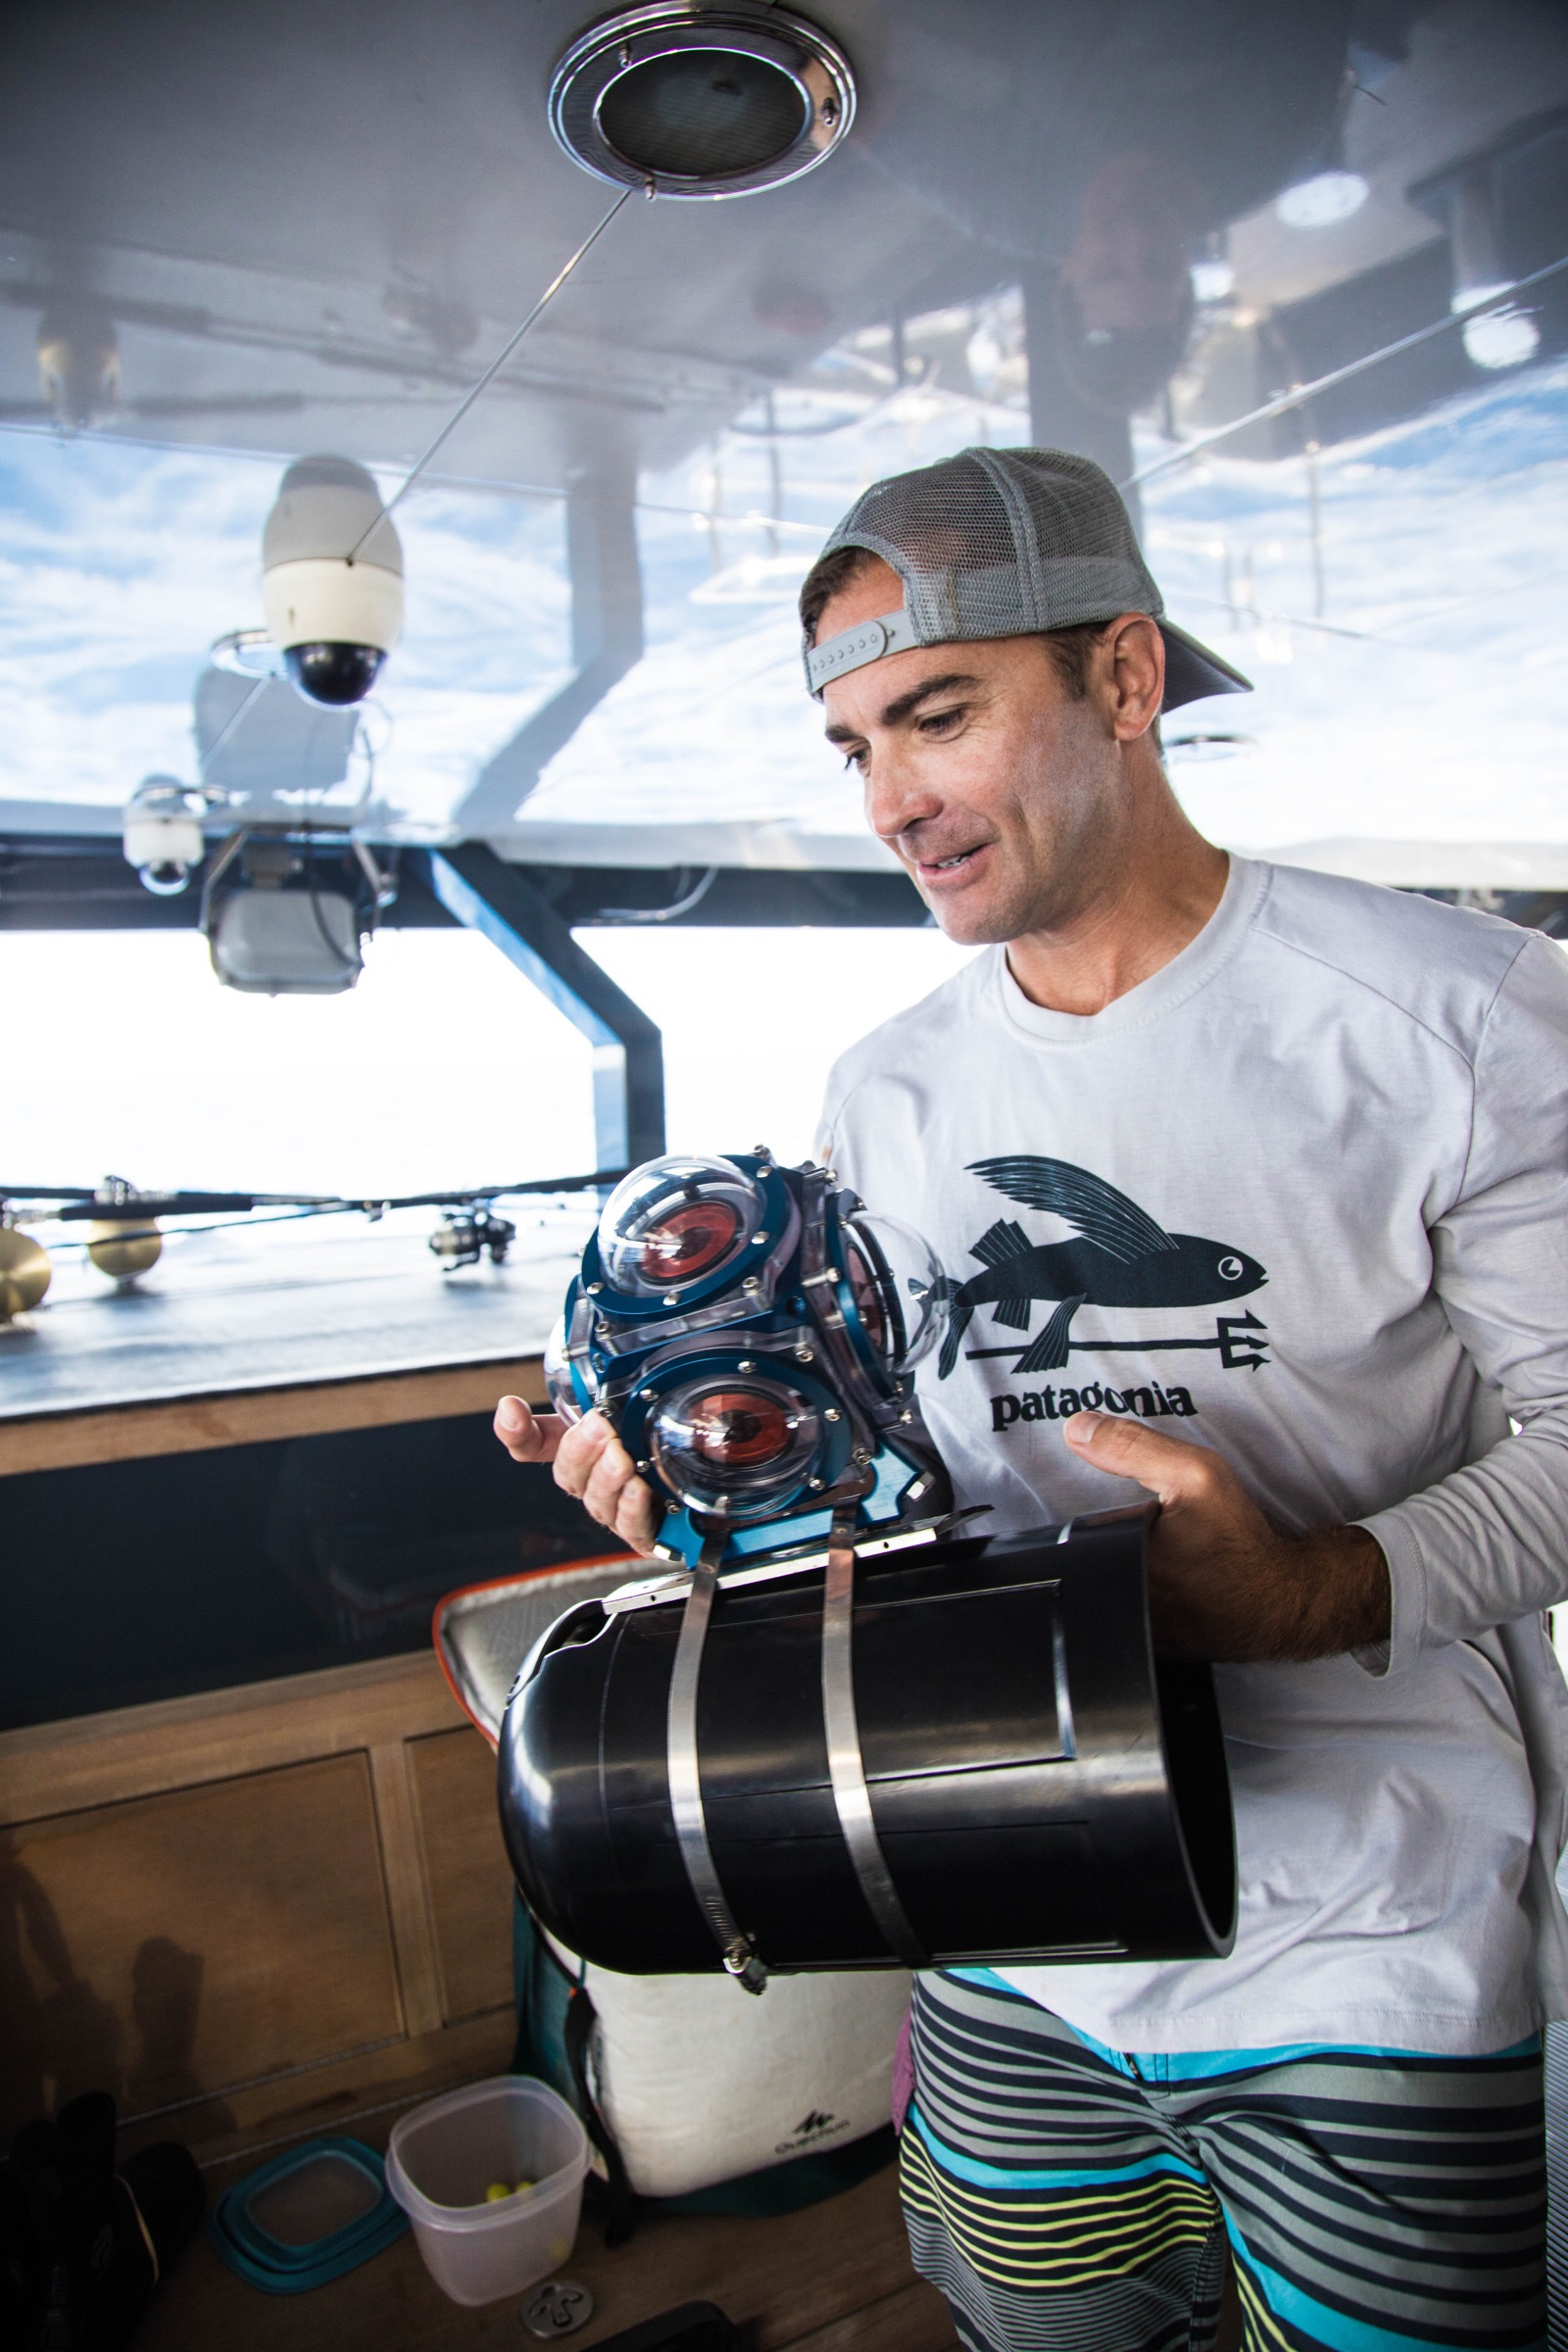 Brian Zgliczynski preps a 360-degree camera for the next dive. Photography by Shayna Brody